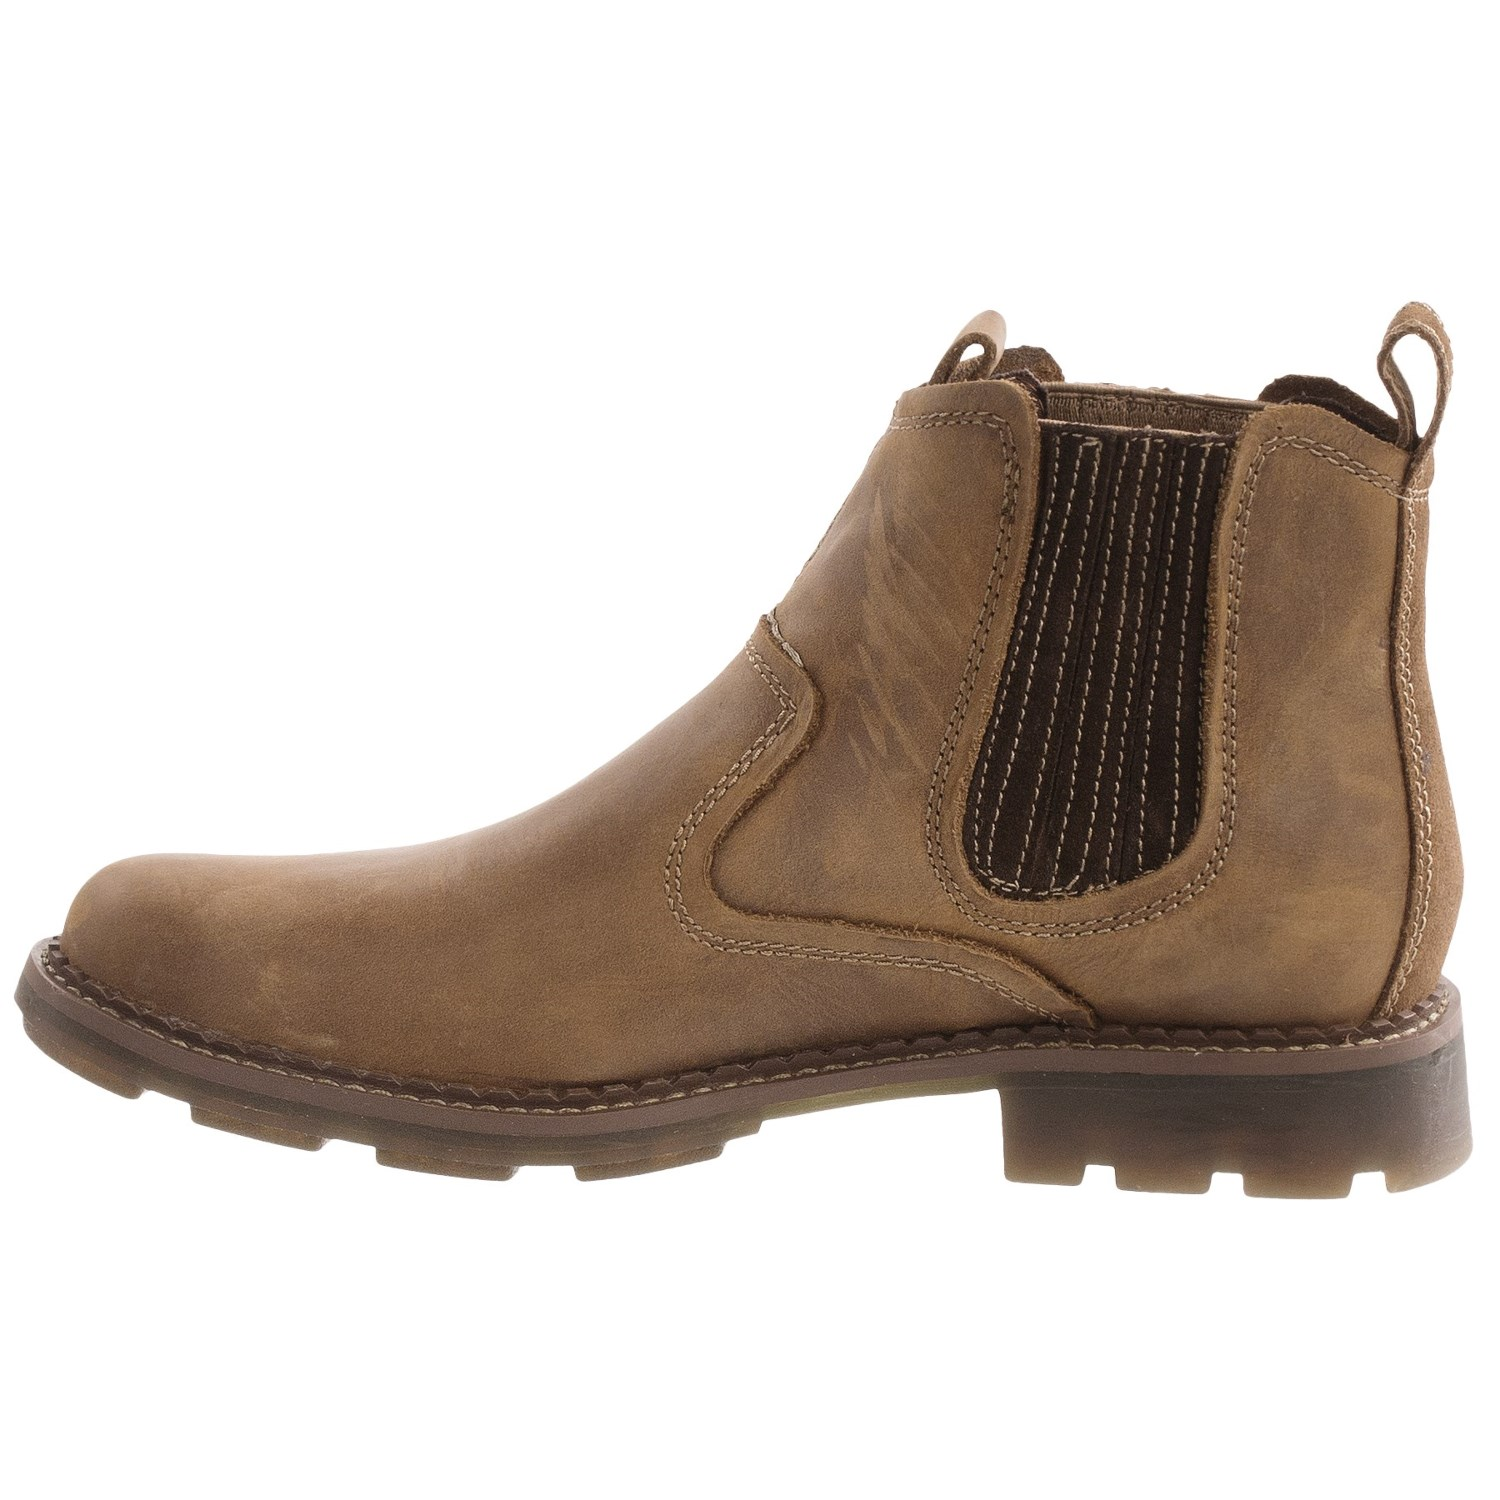 Skechers Pemex Setro Boots For Men 8401W Save 30